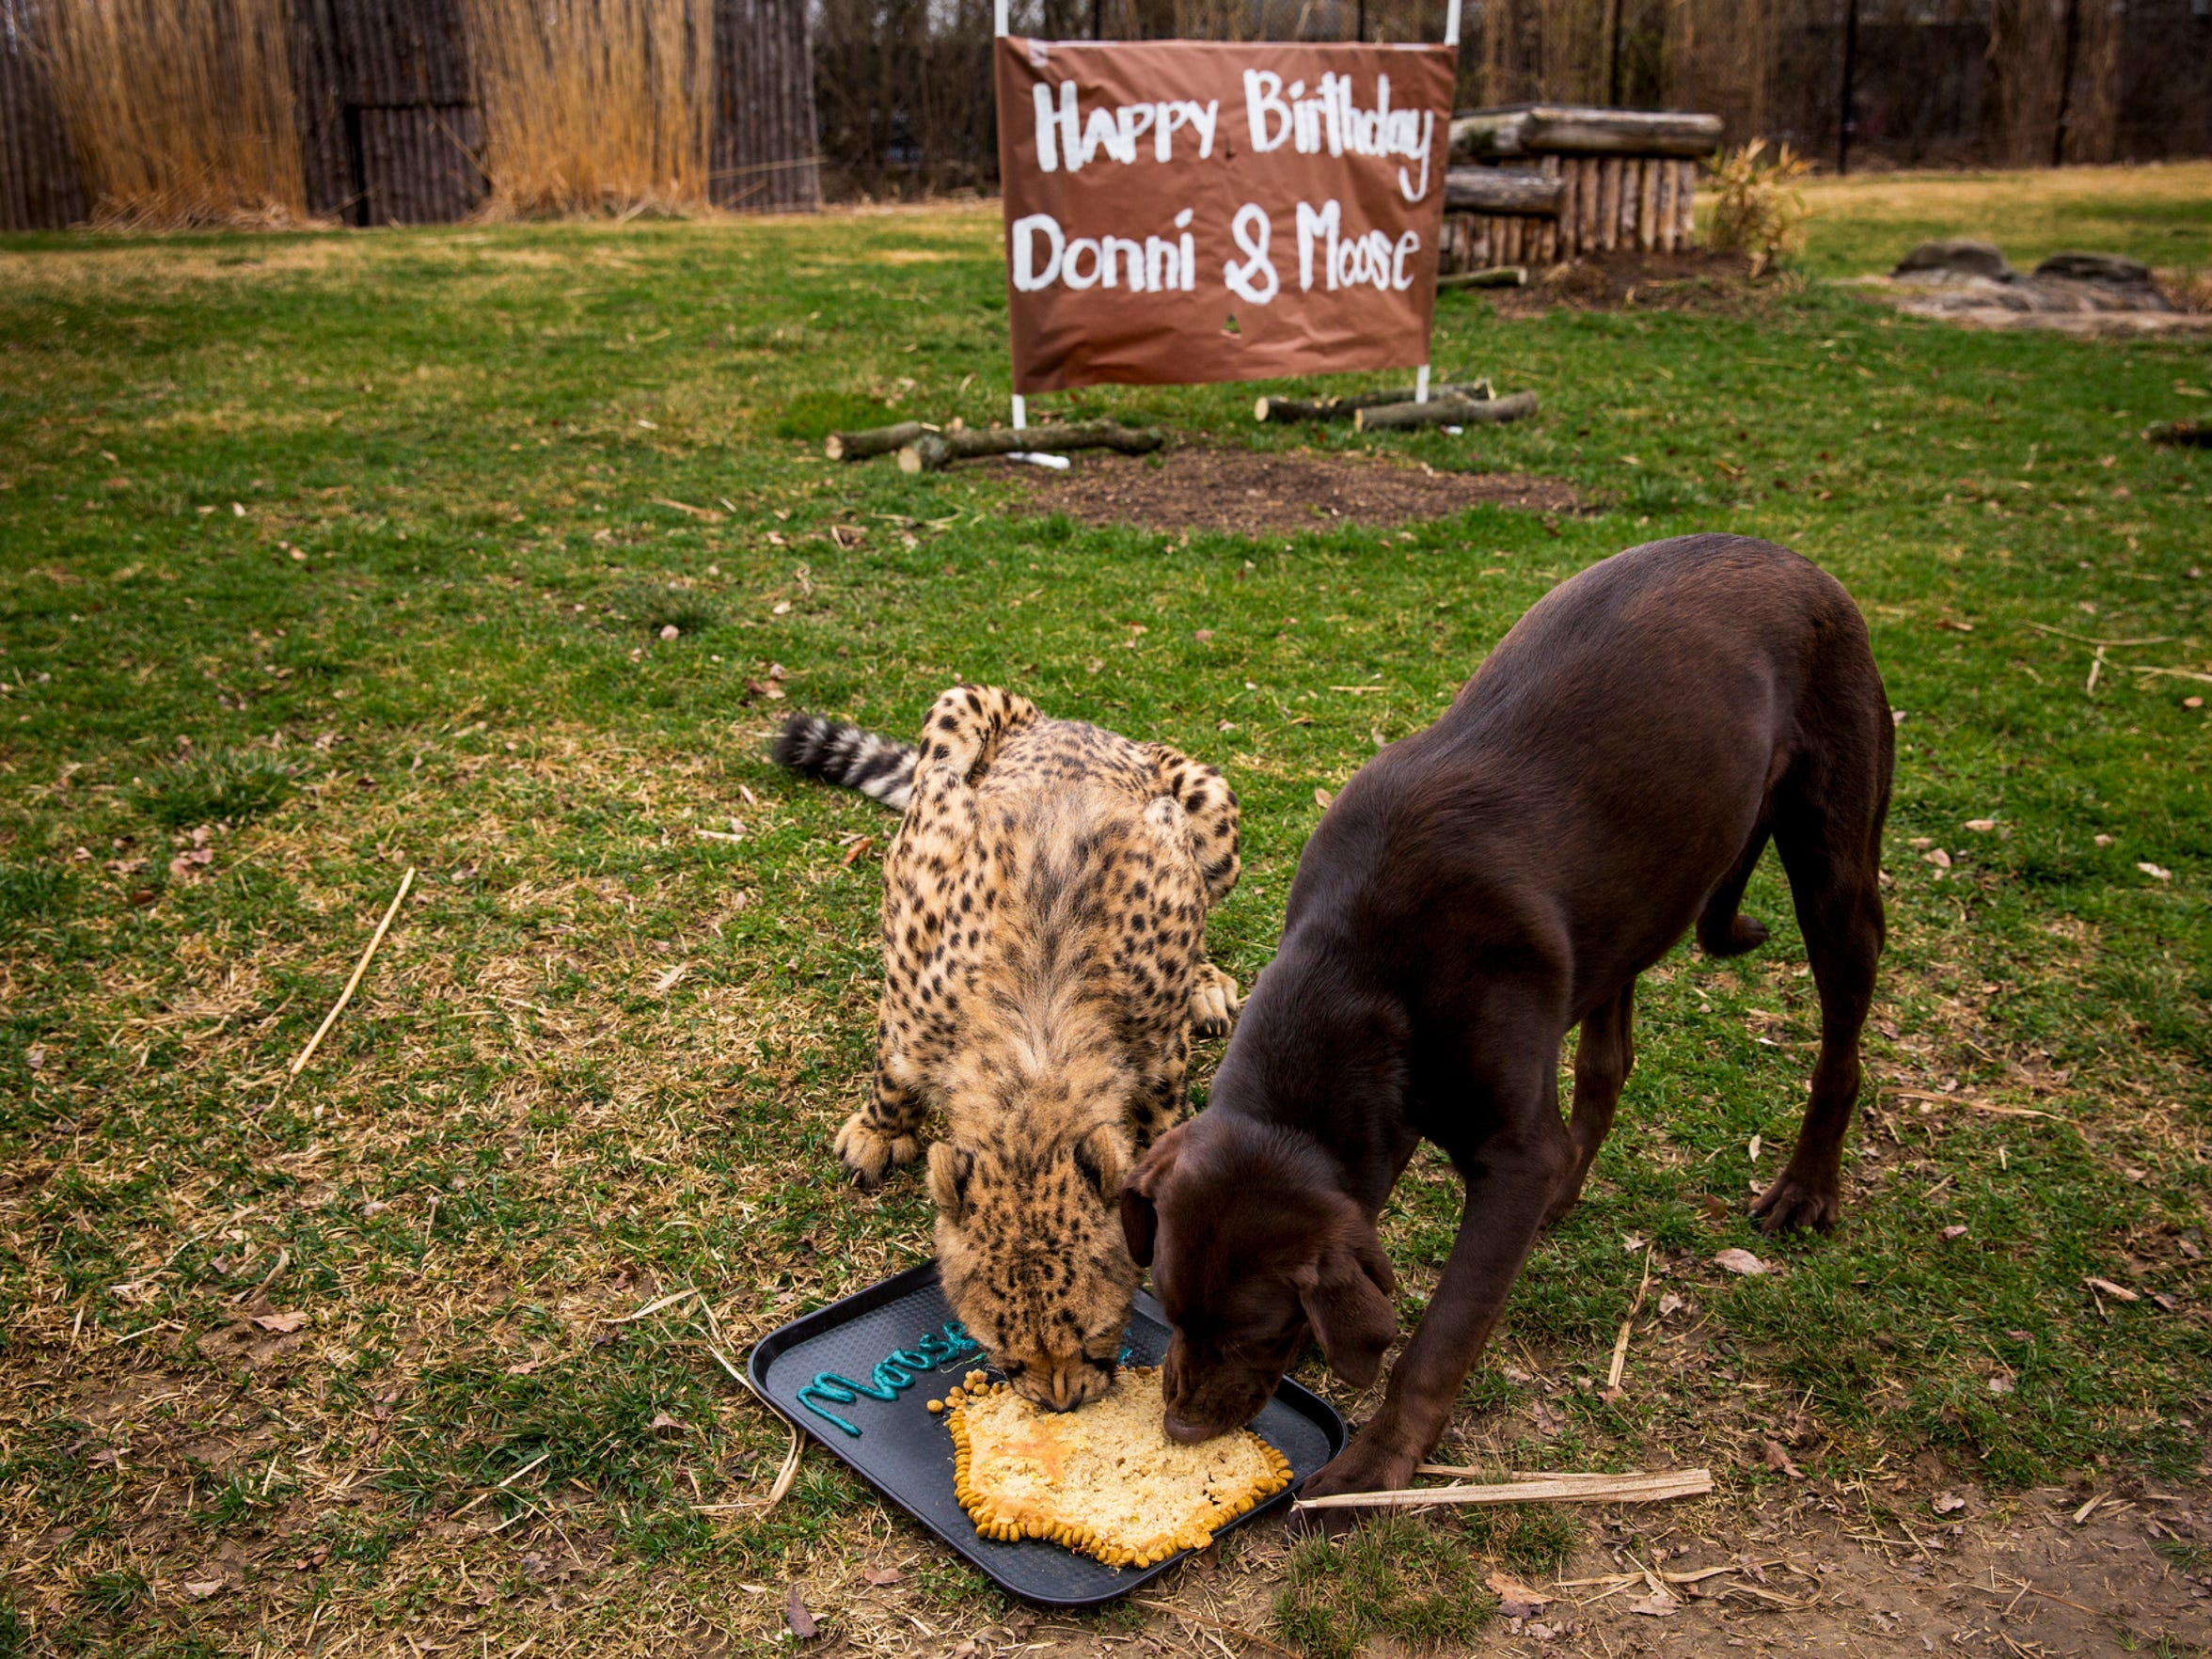 Donni eats Moose's birthday cake during their shared first birthday party Monday, February 27, 2017.